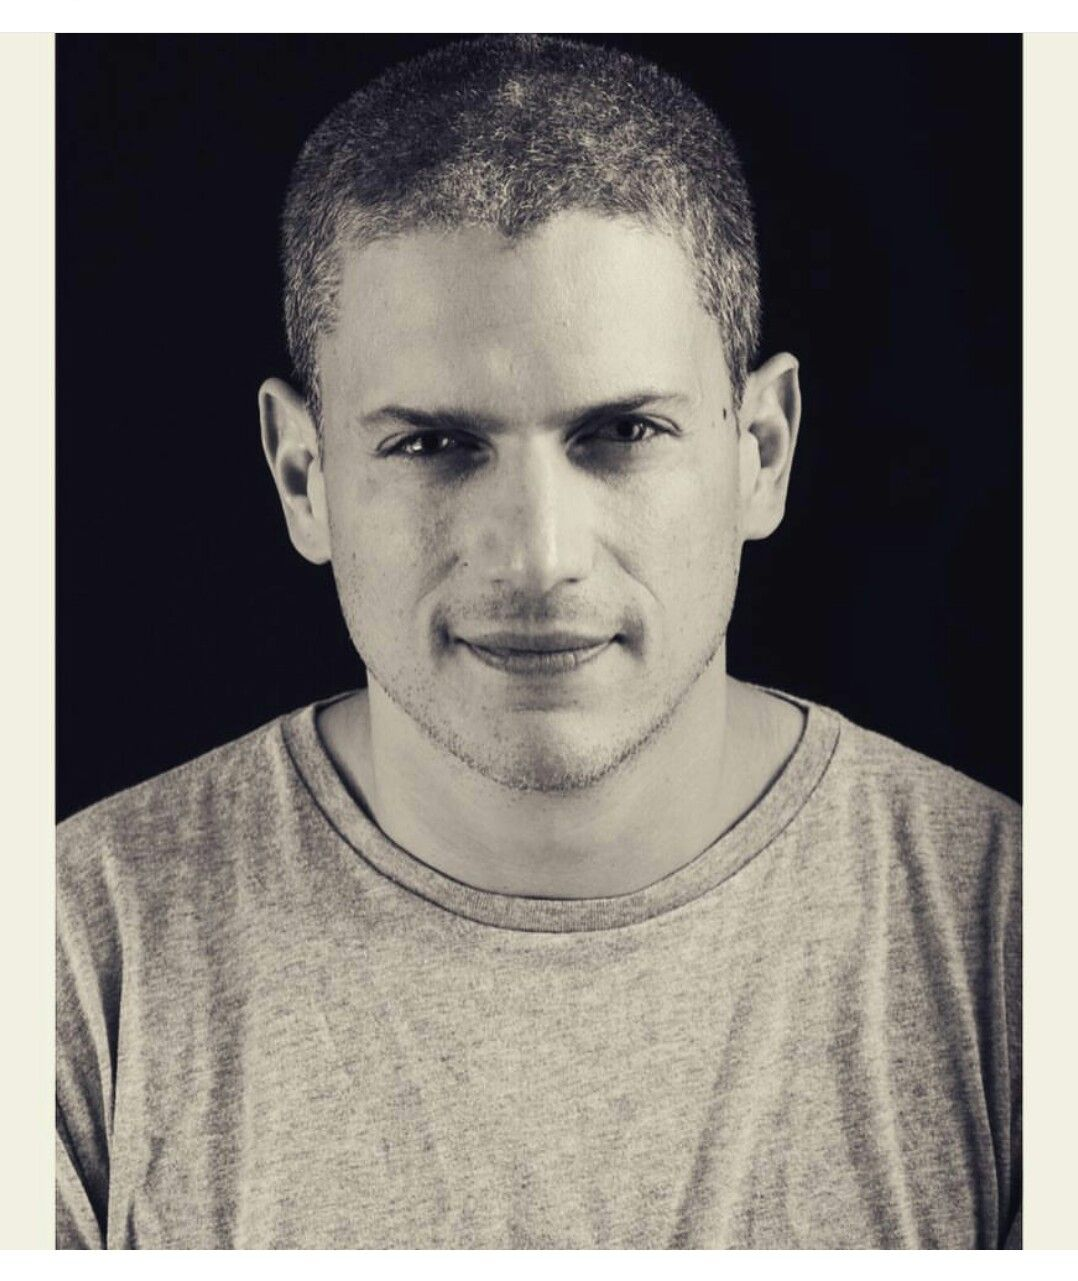 #wentworth #miller #went Love this smile, that eyes ...